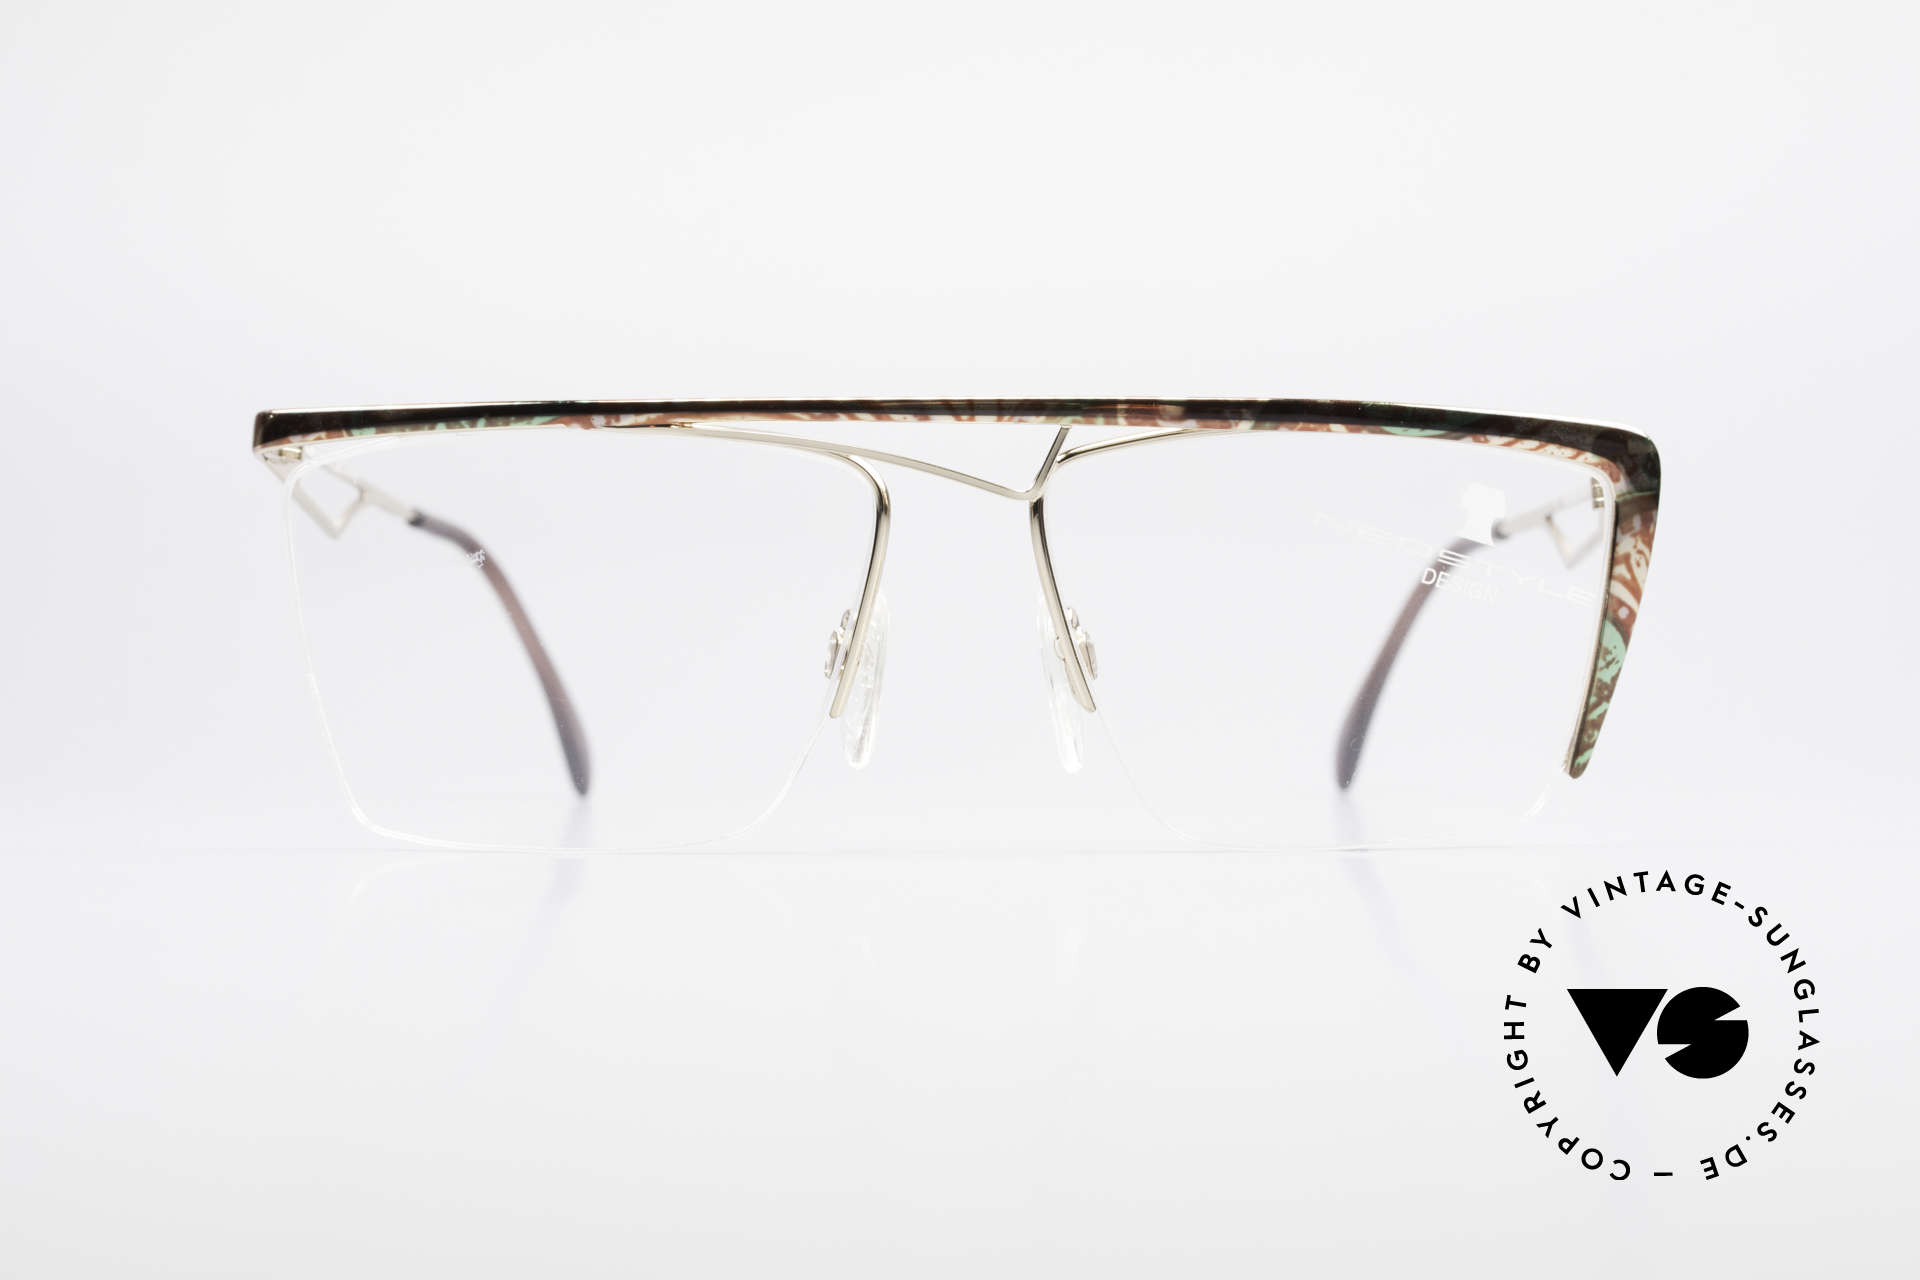 Neostyle Jet 201 Vintage 80's Nylor Frame, lenses are fixed with a nylor thread (half frame), Made for Men and Women